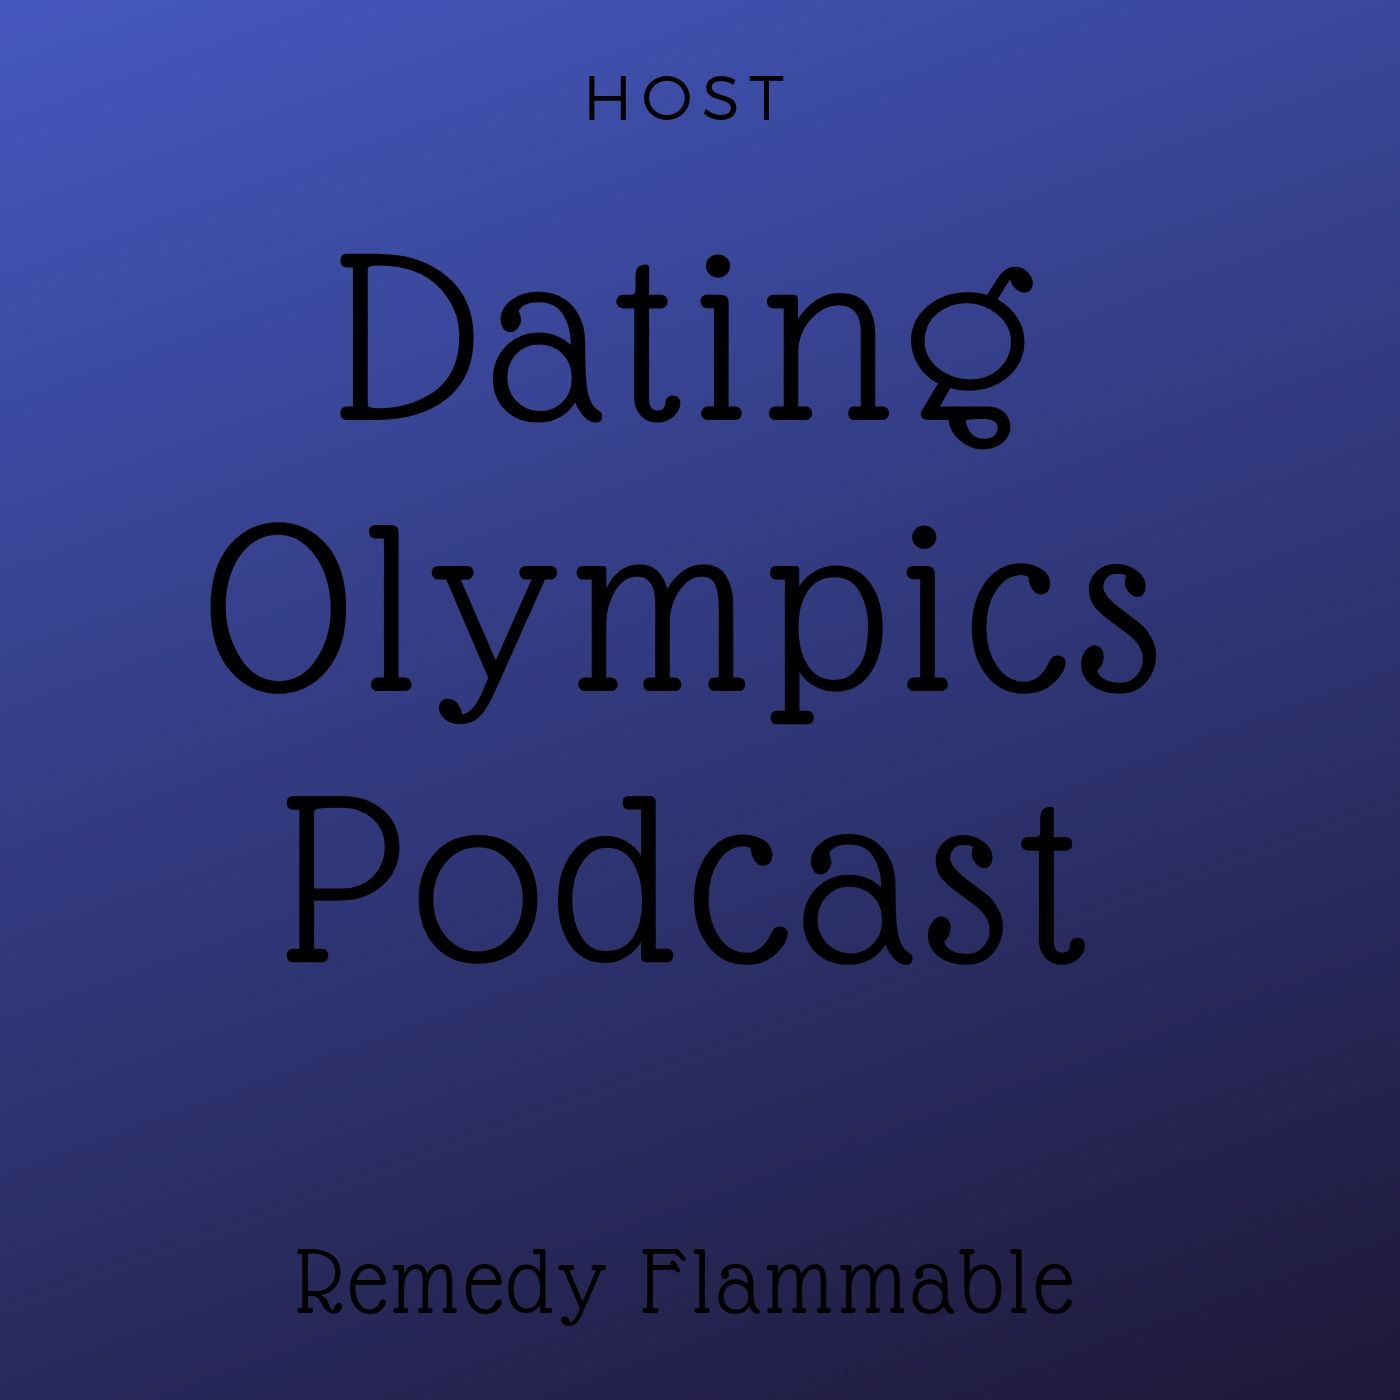 datingolympicspodcast